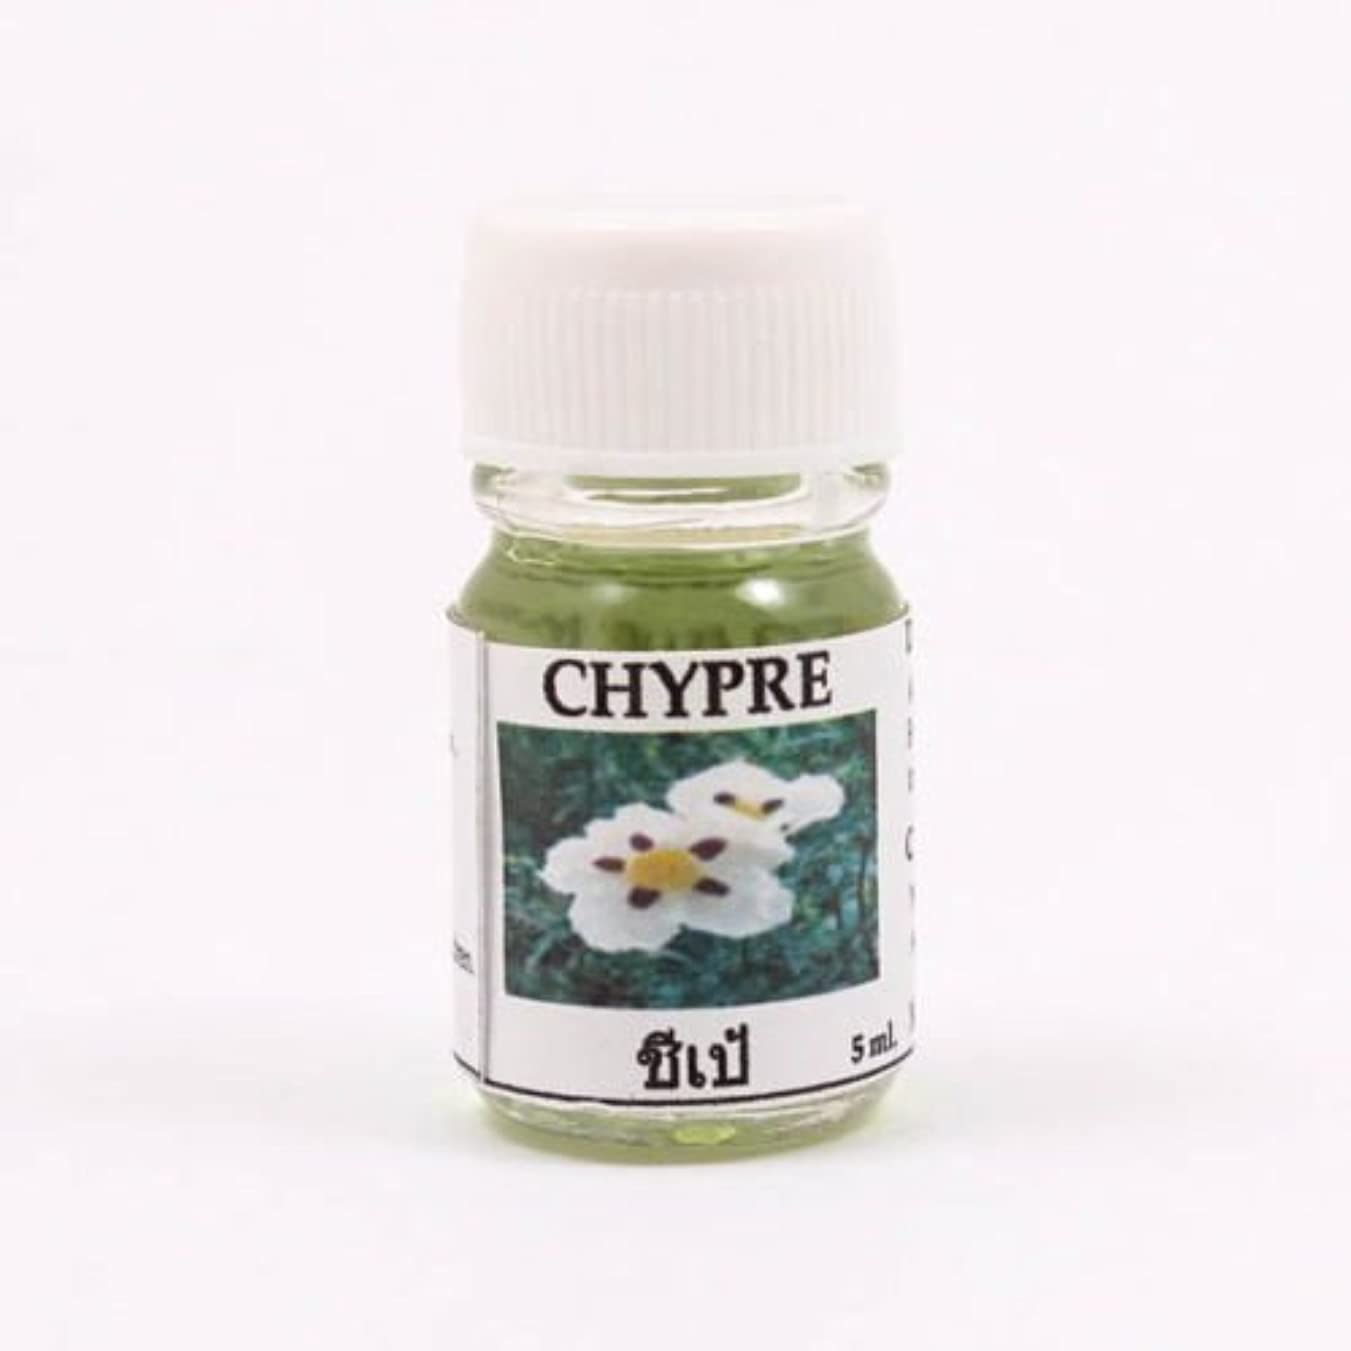 電気のシリング仮定する6X Chypre Aroma Fragrance Essential Oil 5ML. (cc) Diffuser Burner Therapy